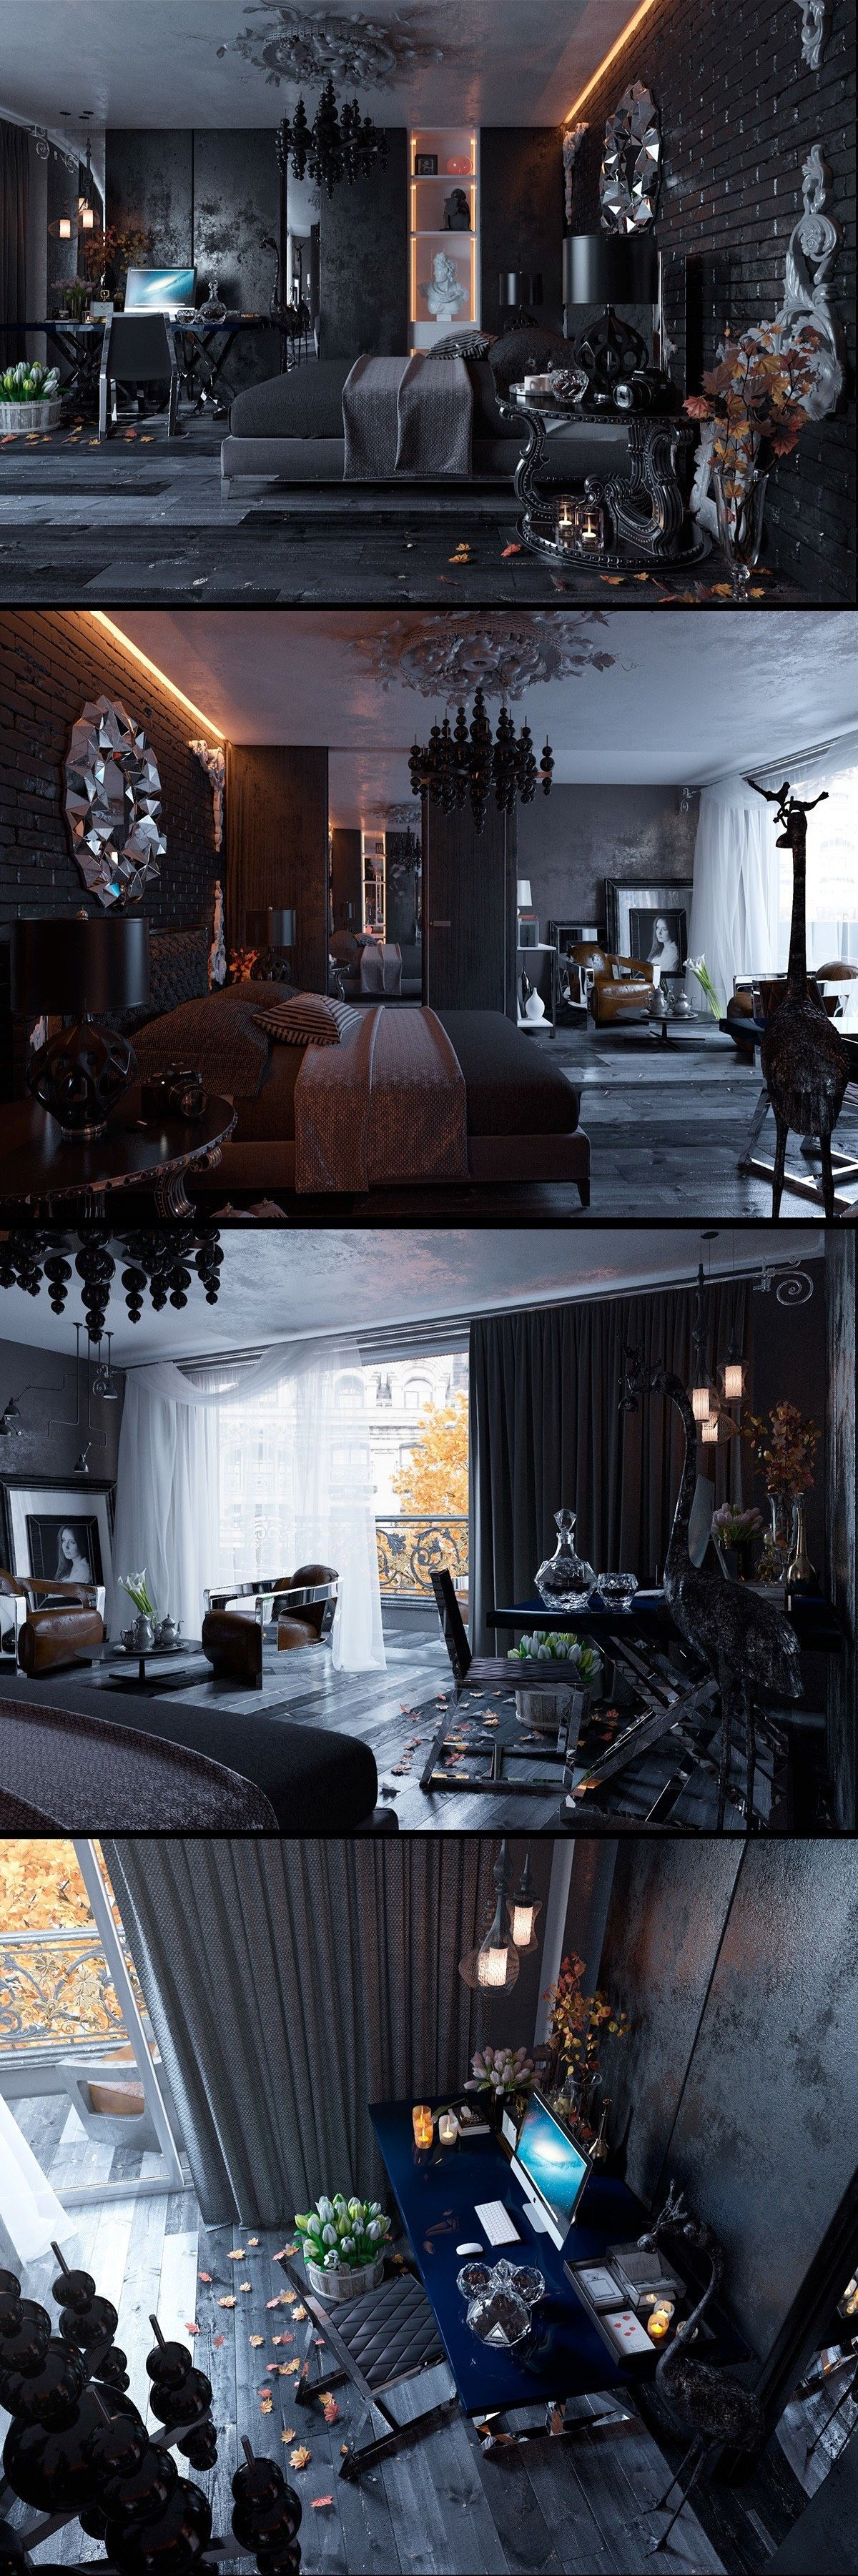 Dark Bedroom Design Ideas And Inspiration To Get The Relax